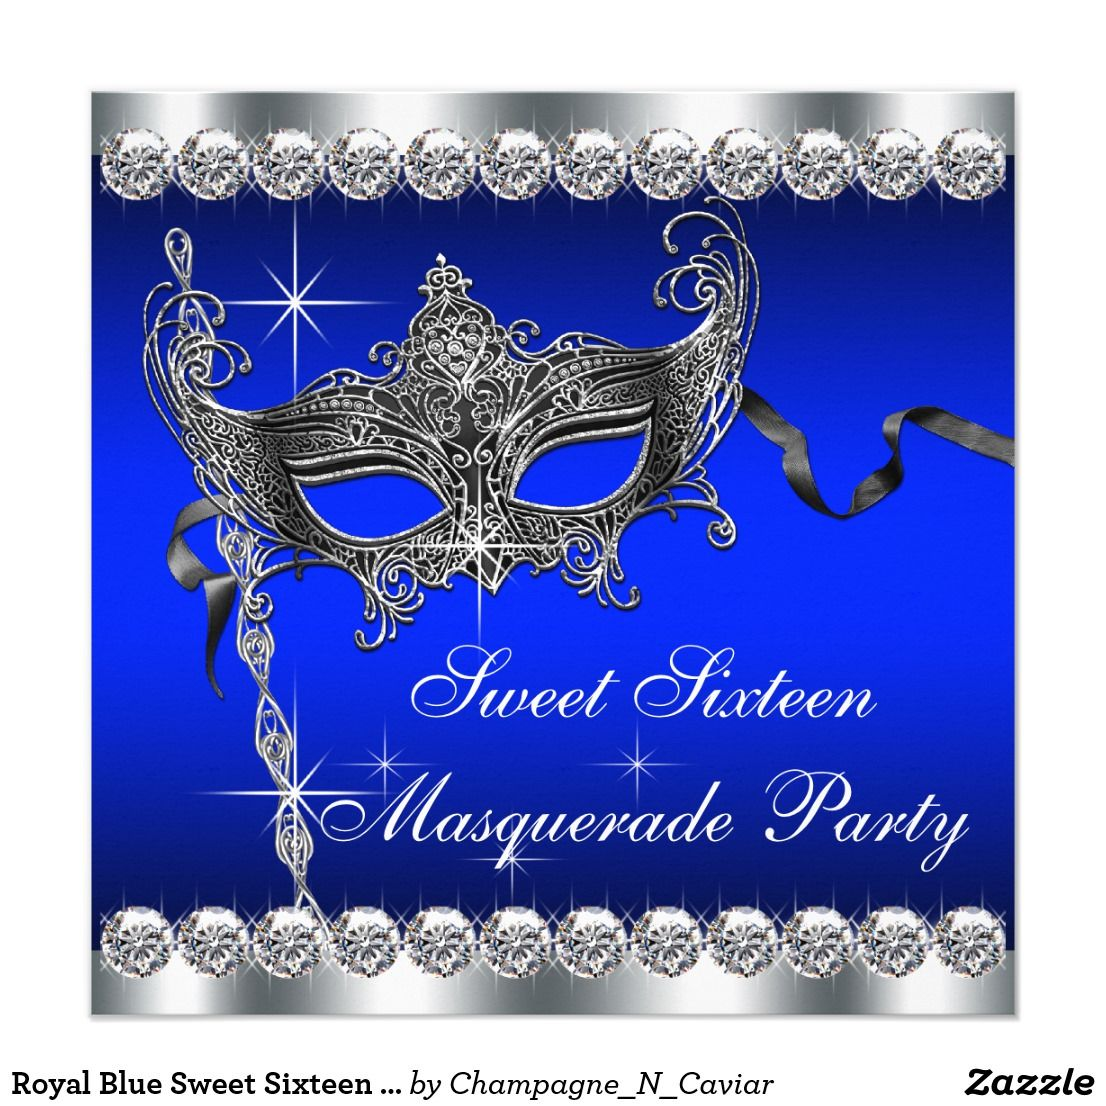 Royal Blue Sweet Sixteen Masquerade Party Card | Blue sweets ...